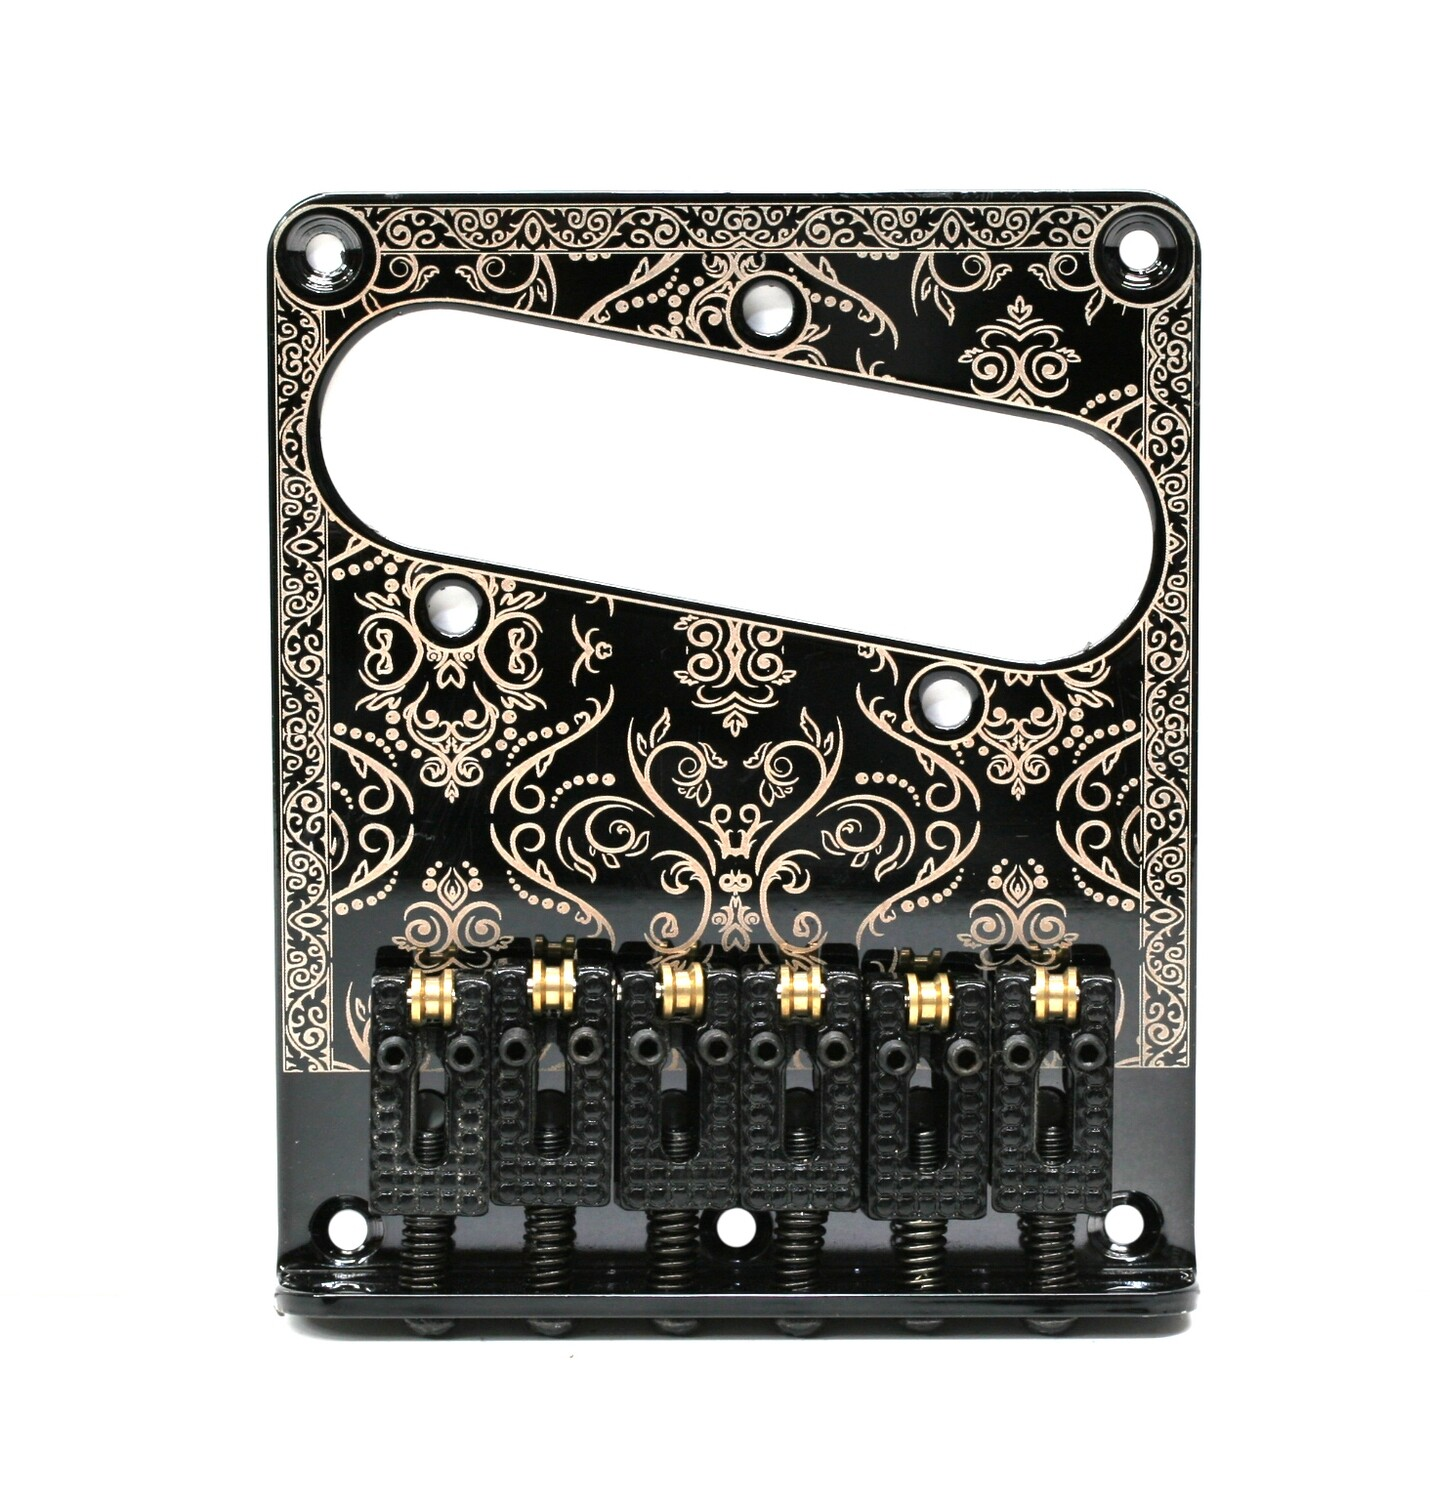 Brio 6 Saddles Telecaster Bridge Plate Design Gold on Black